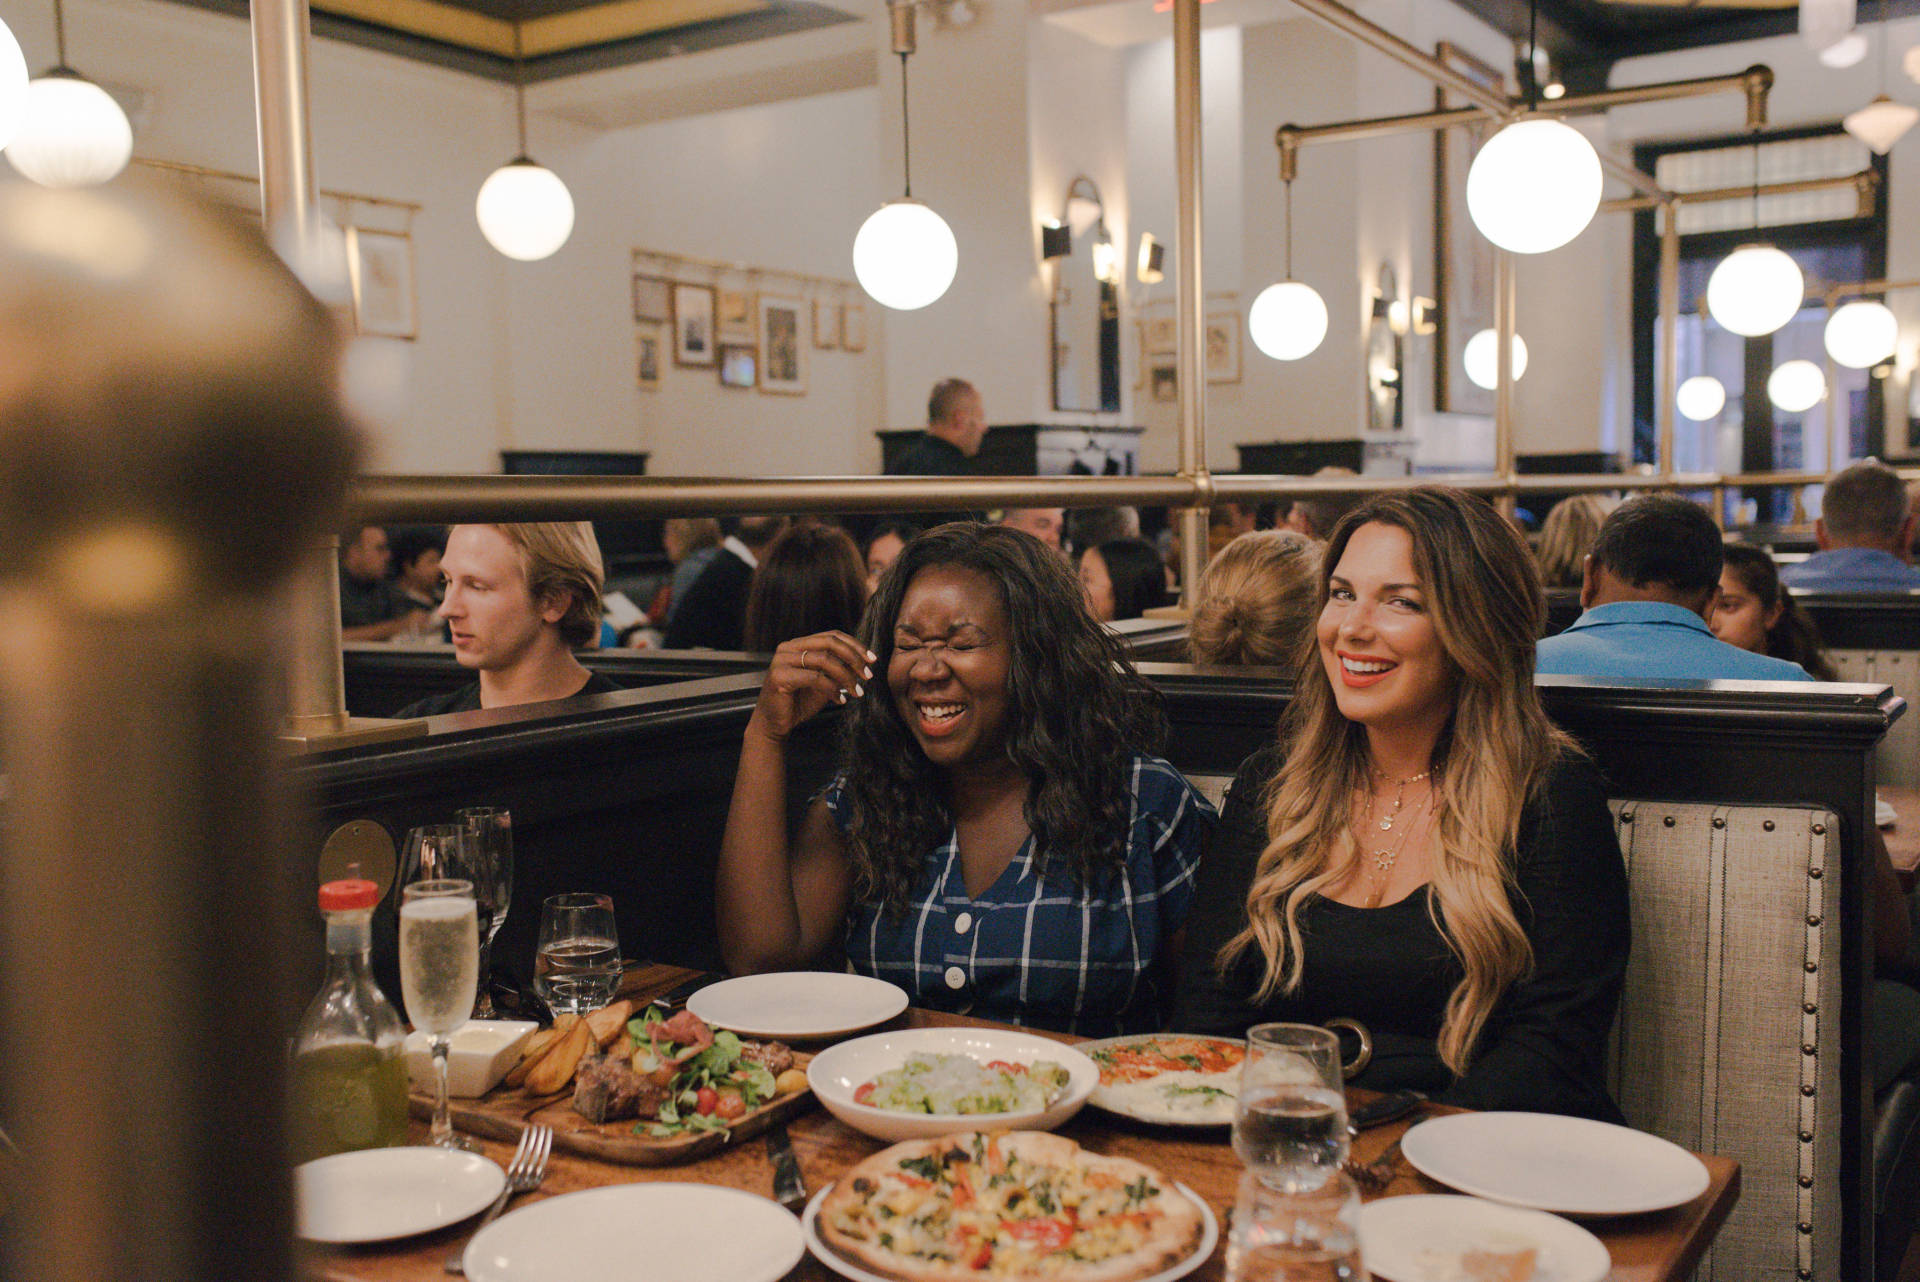 Girls Weekend In San Francisco: We stayed at the most beautiful Kimpton Buchanan, ate at the most yummy food spots and explored some of the most amazing locations!